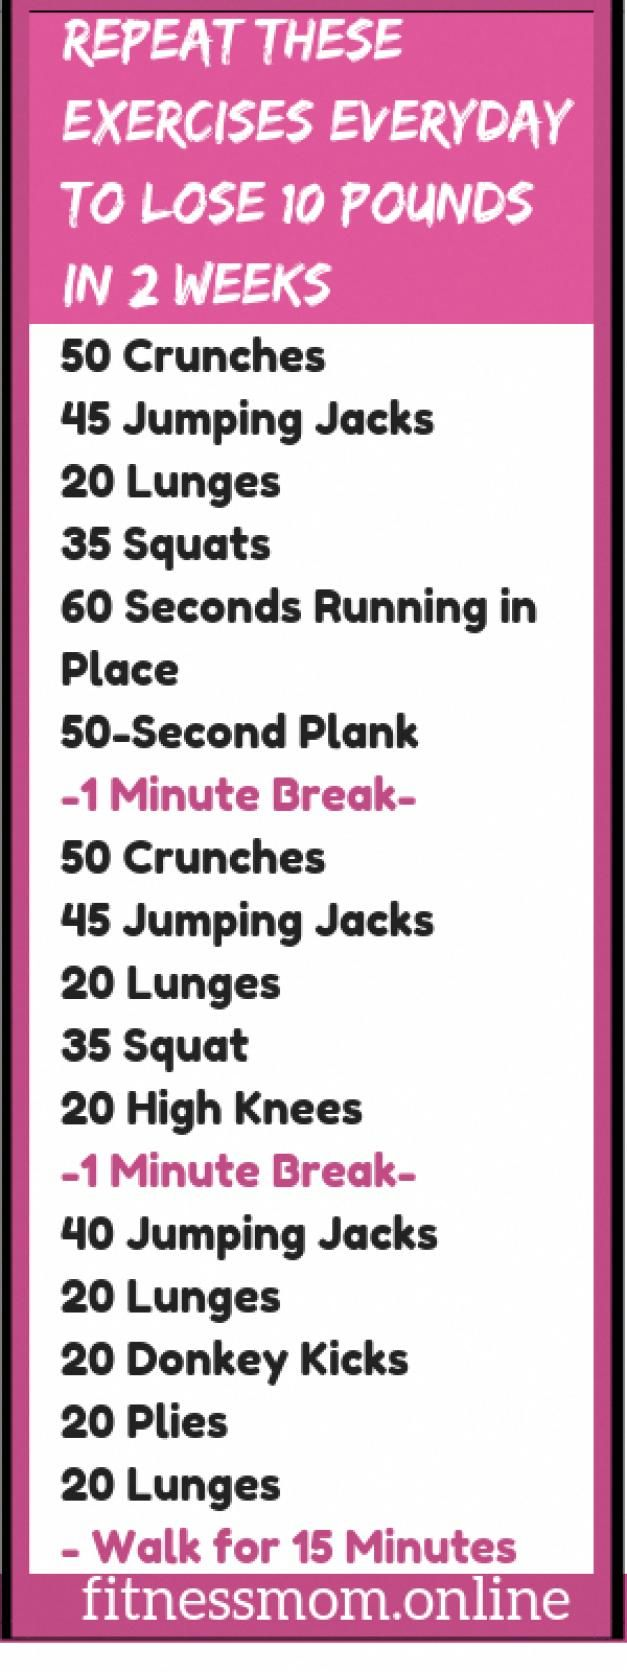 Use These Exercises Everyday To Lose 10 Pounds In 2 Weeks